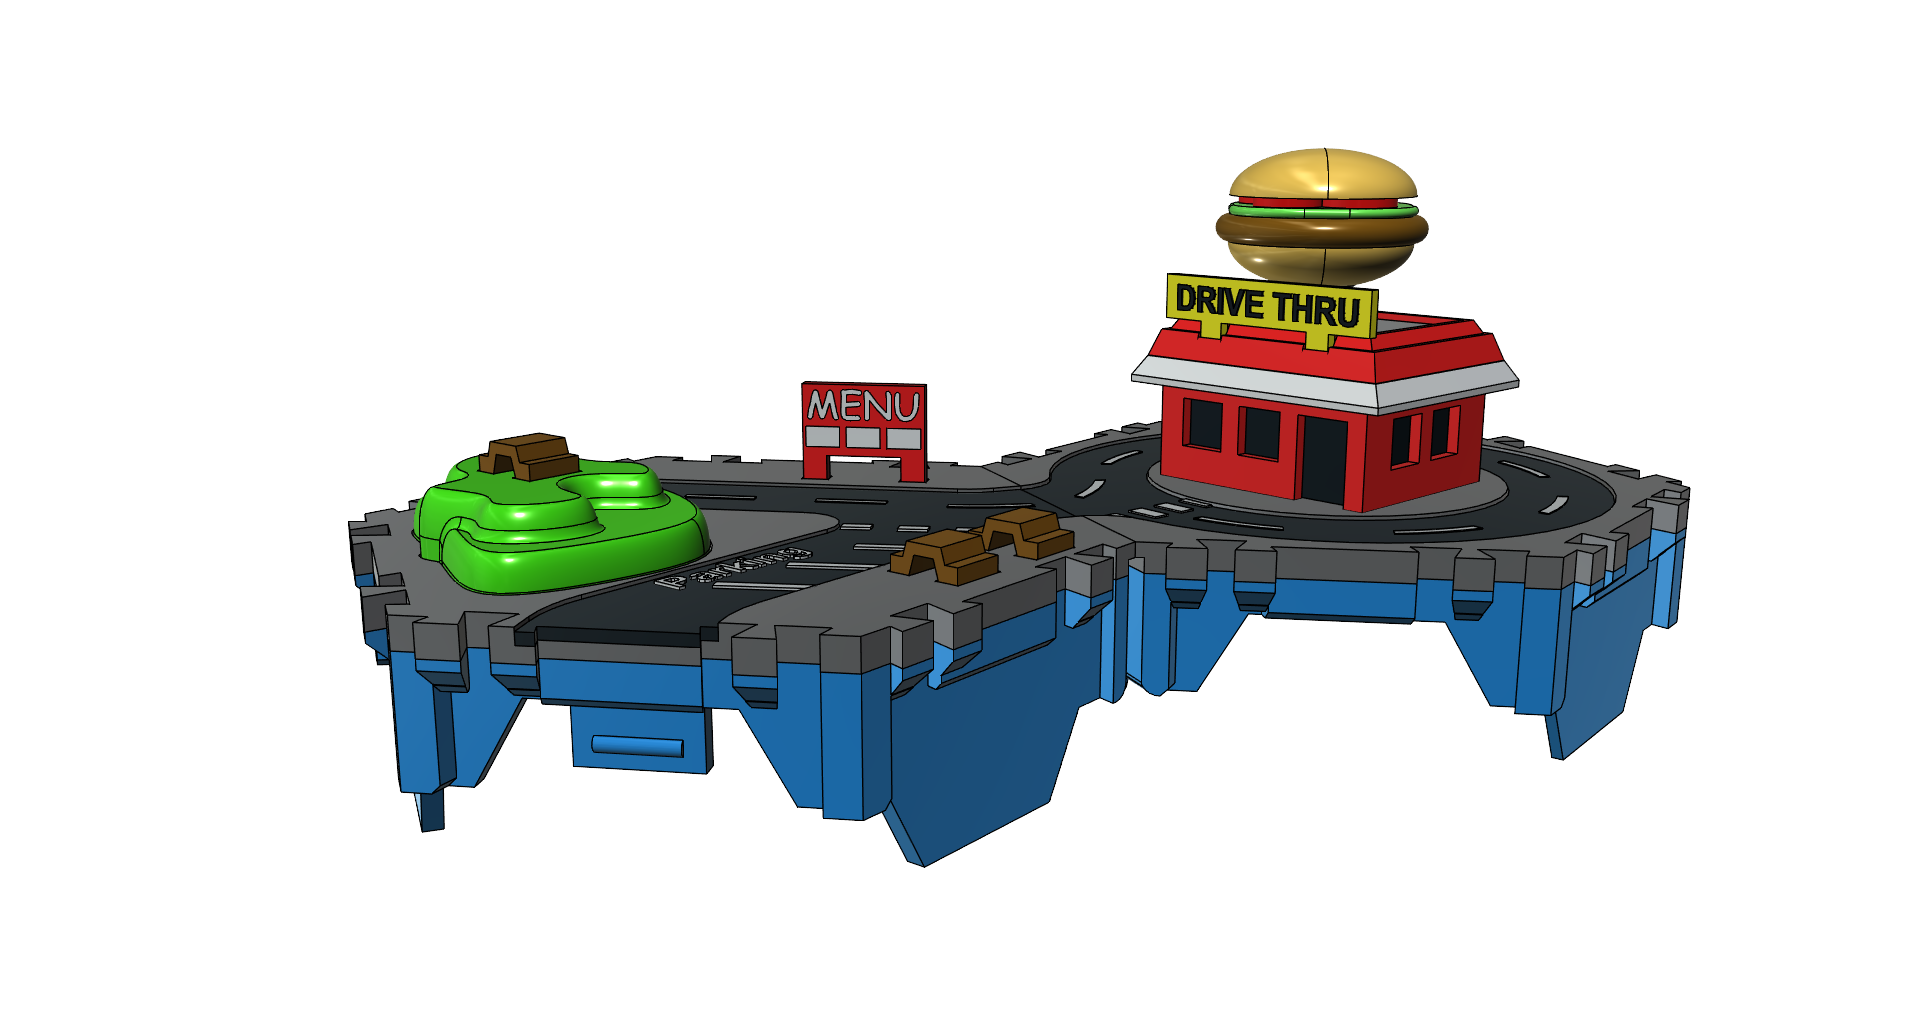 5.png Download free STL file Little Cities - Burger Drive Through • Template to 3D print, neil3dprints